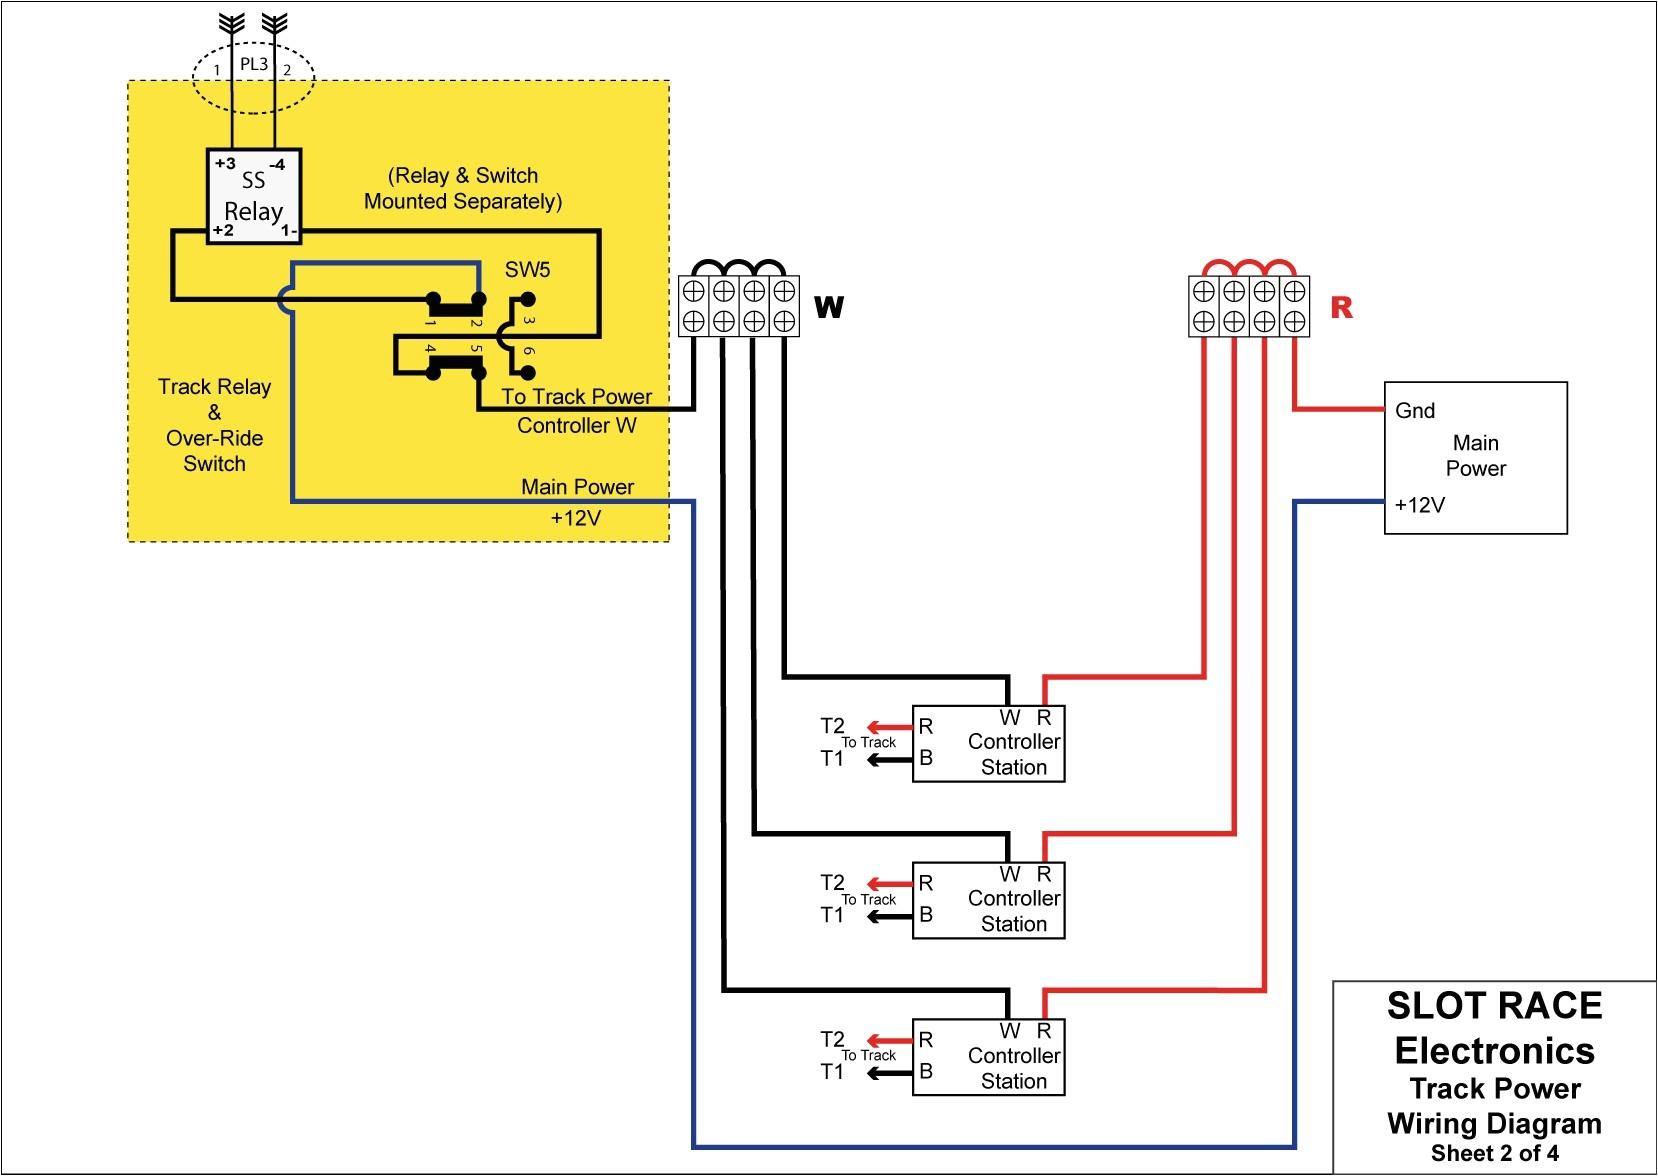 Photocell Wiring Diagram Pdf Photocell Labelled Circuit Diagram Wiring Diagram Used